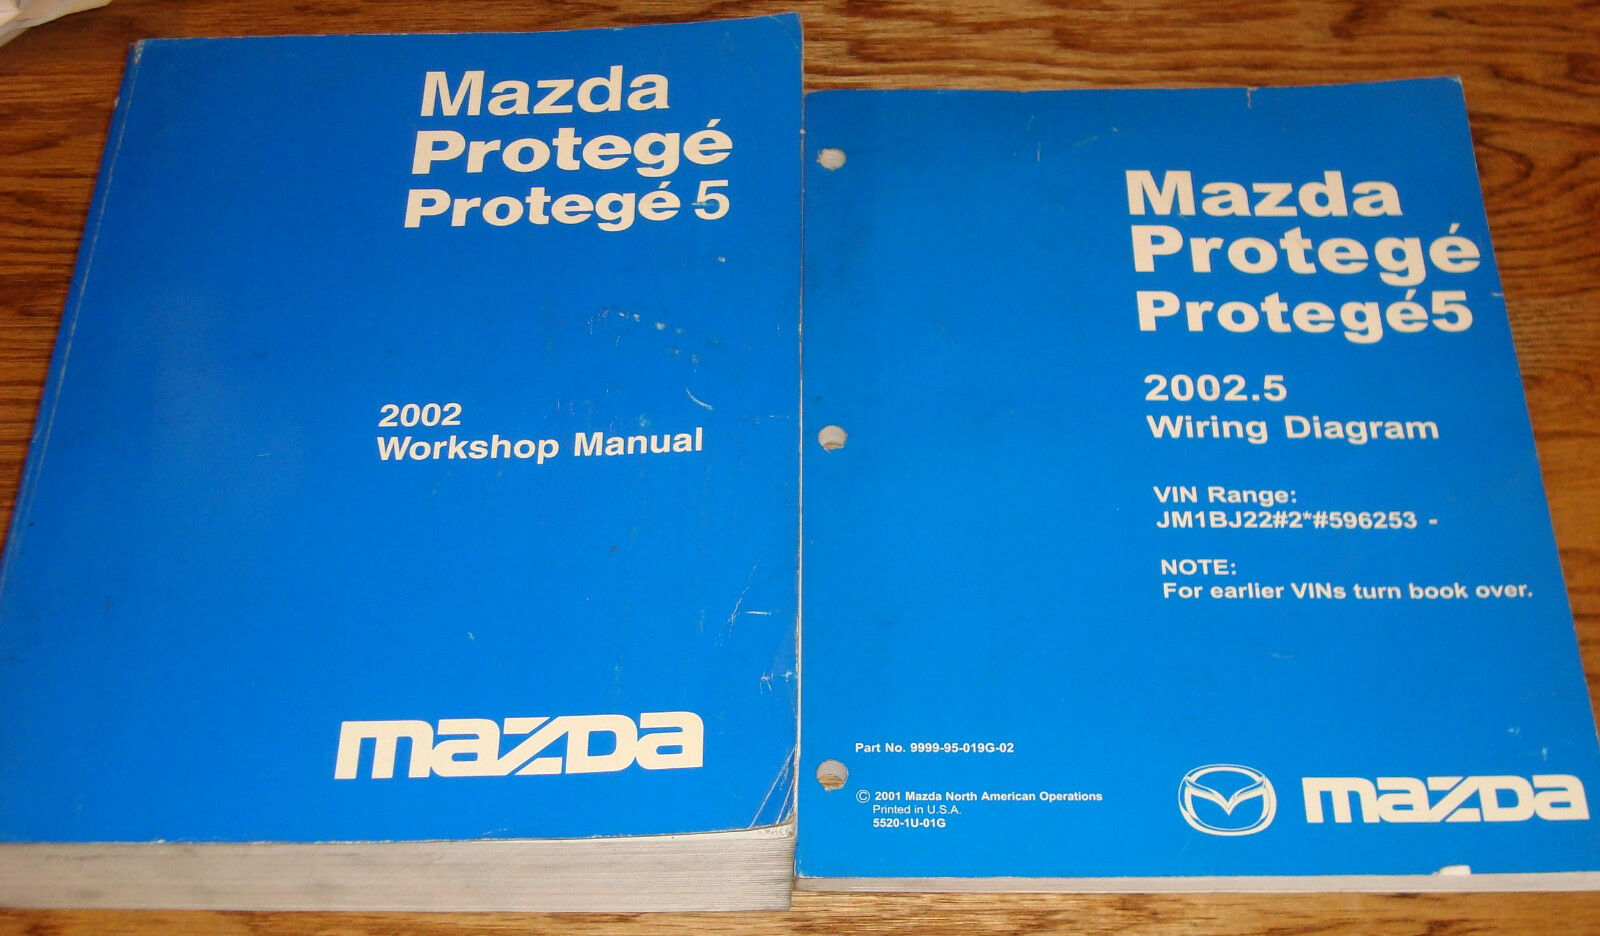 2002 Mazda Protege / Protege5 Shop Service Manual + 2002.5 Wiring Diagram  Set 1 of 1Only 1 available ...